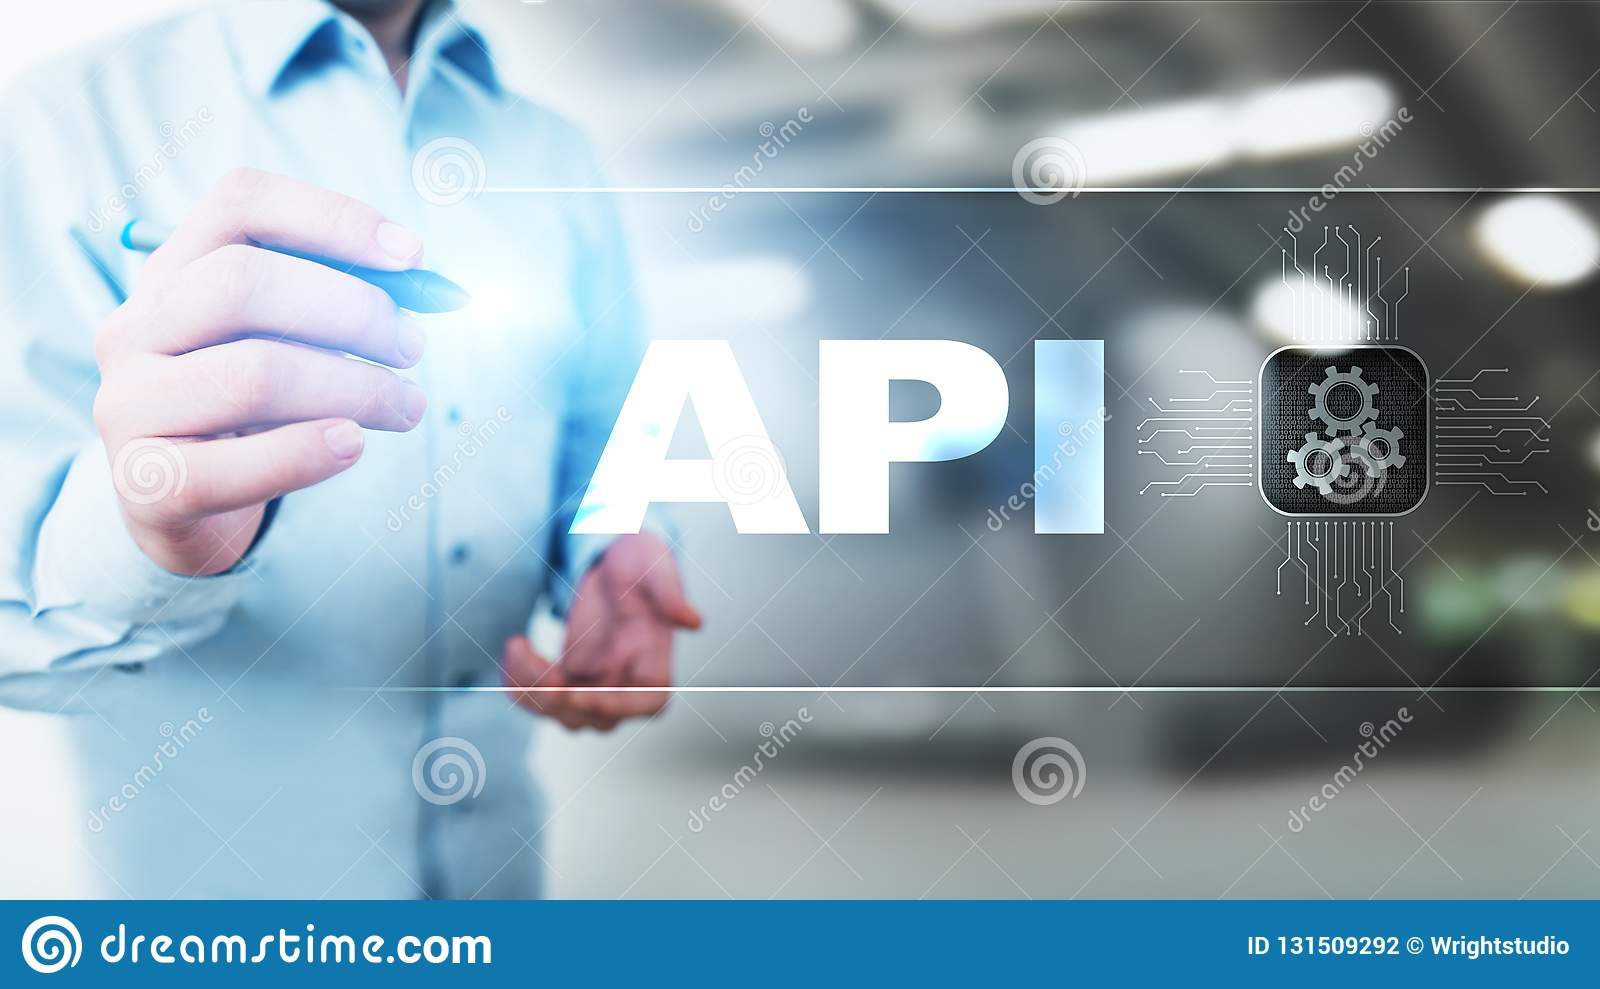 API - Application Programming Interface, software development tool, information technology and business concept.